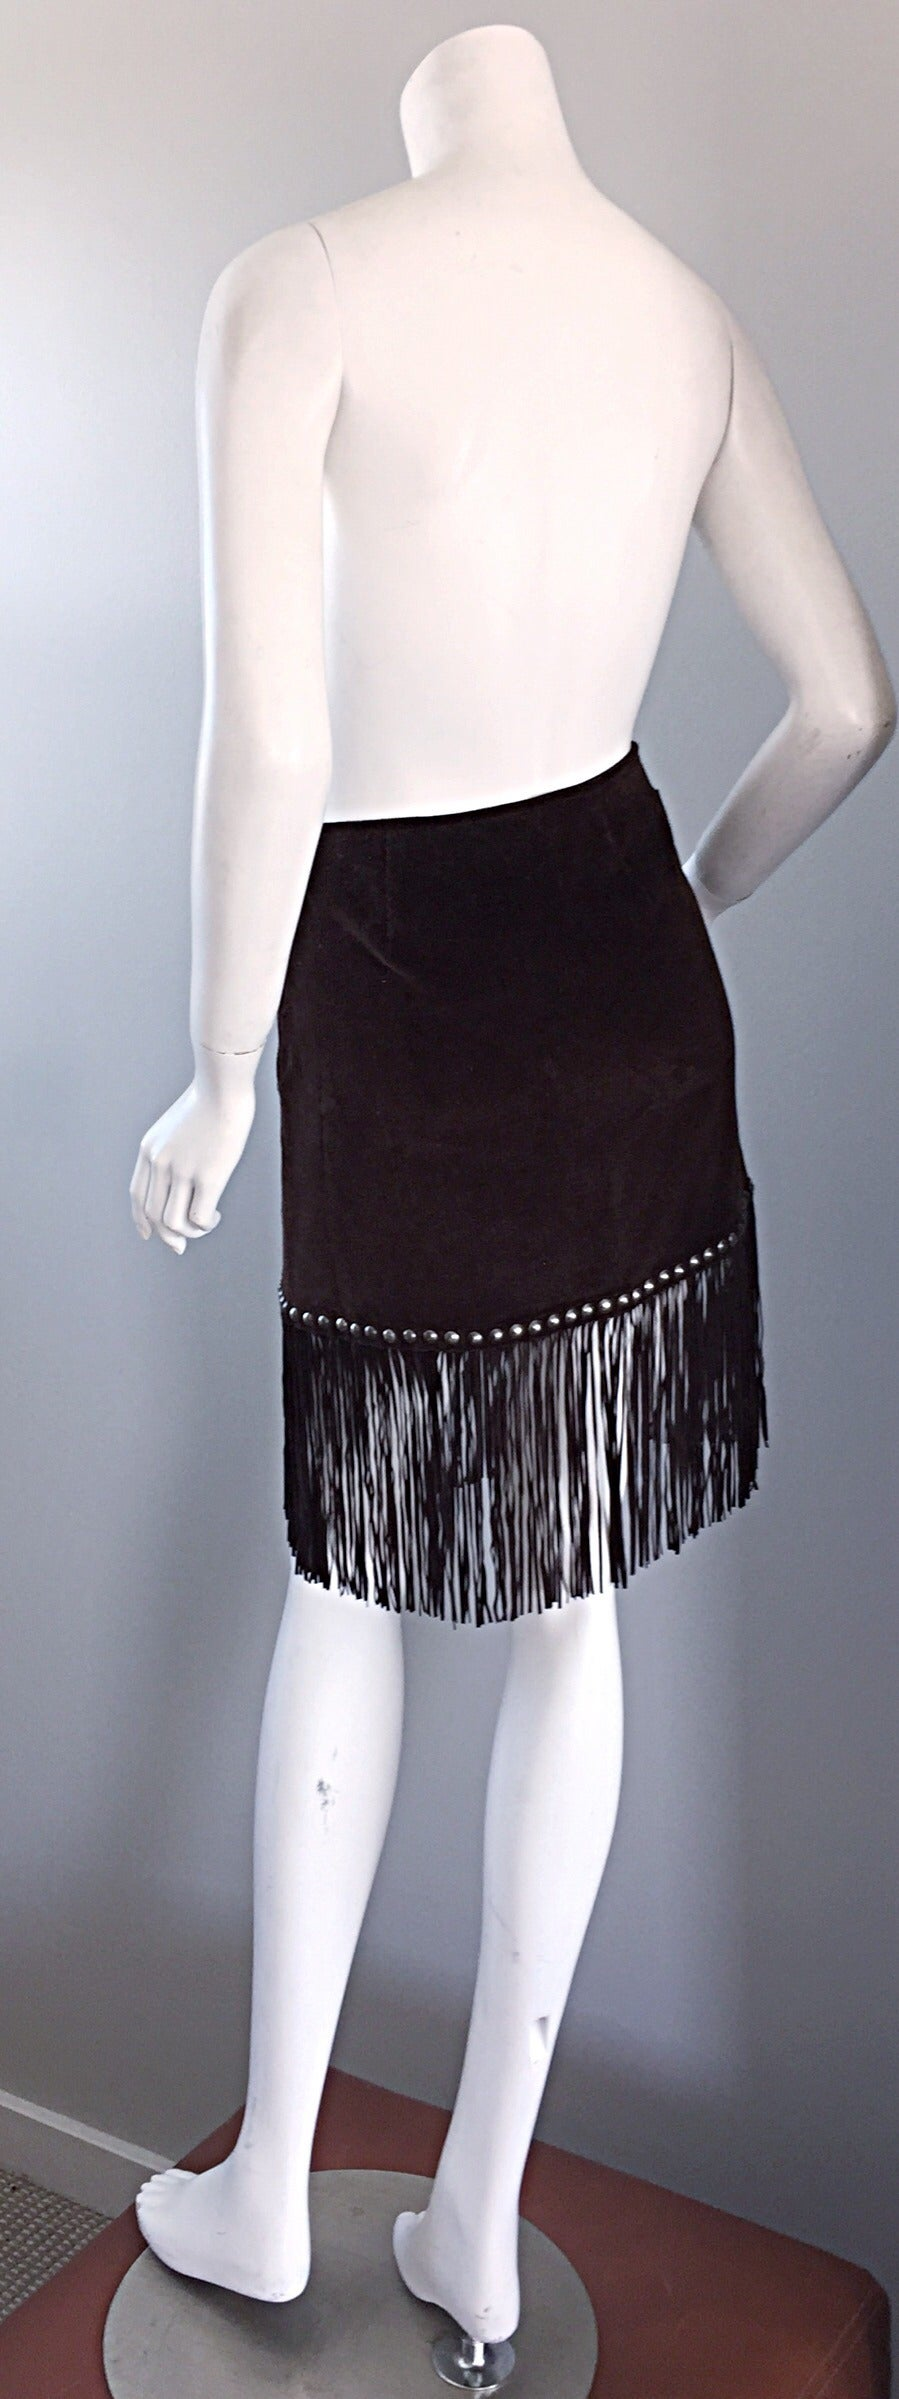 Vintage Moschino Brown Cotton Corduroy Studded 1990s 90s Fringe Mini Skirt 8